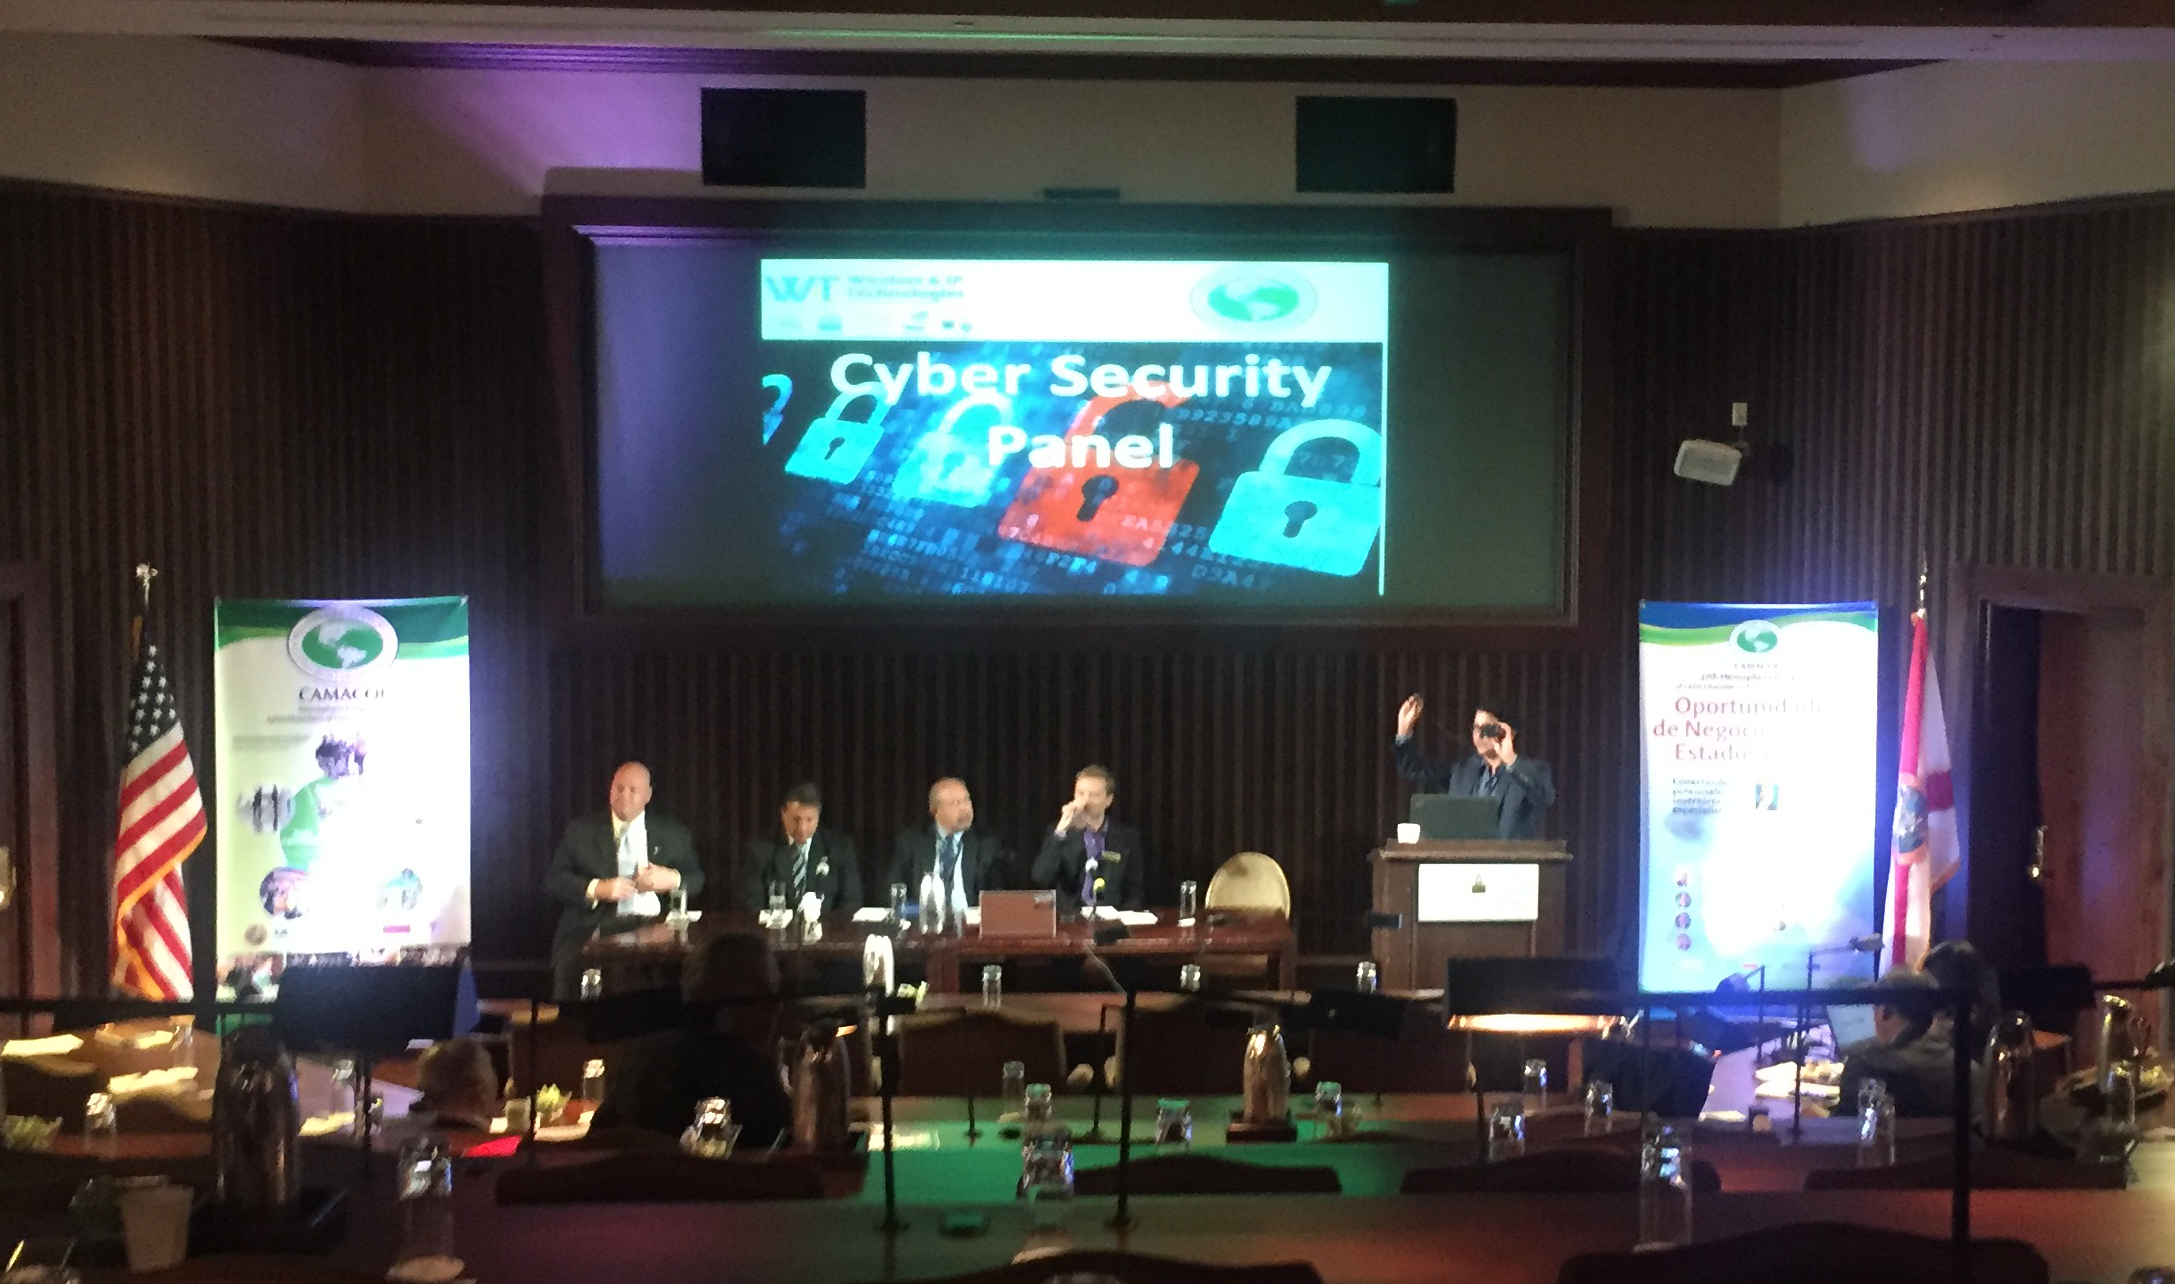 Axence - CAMACOL Cyber Security Panel